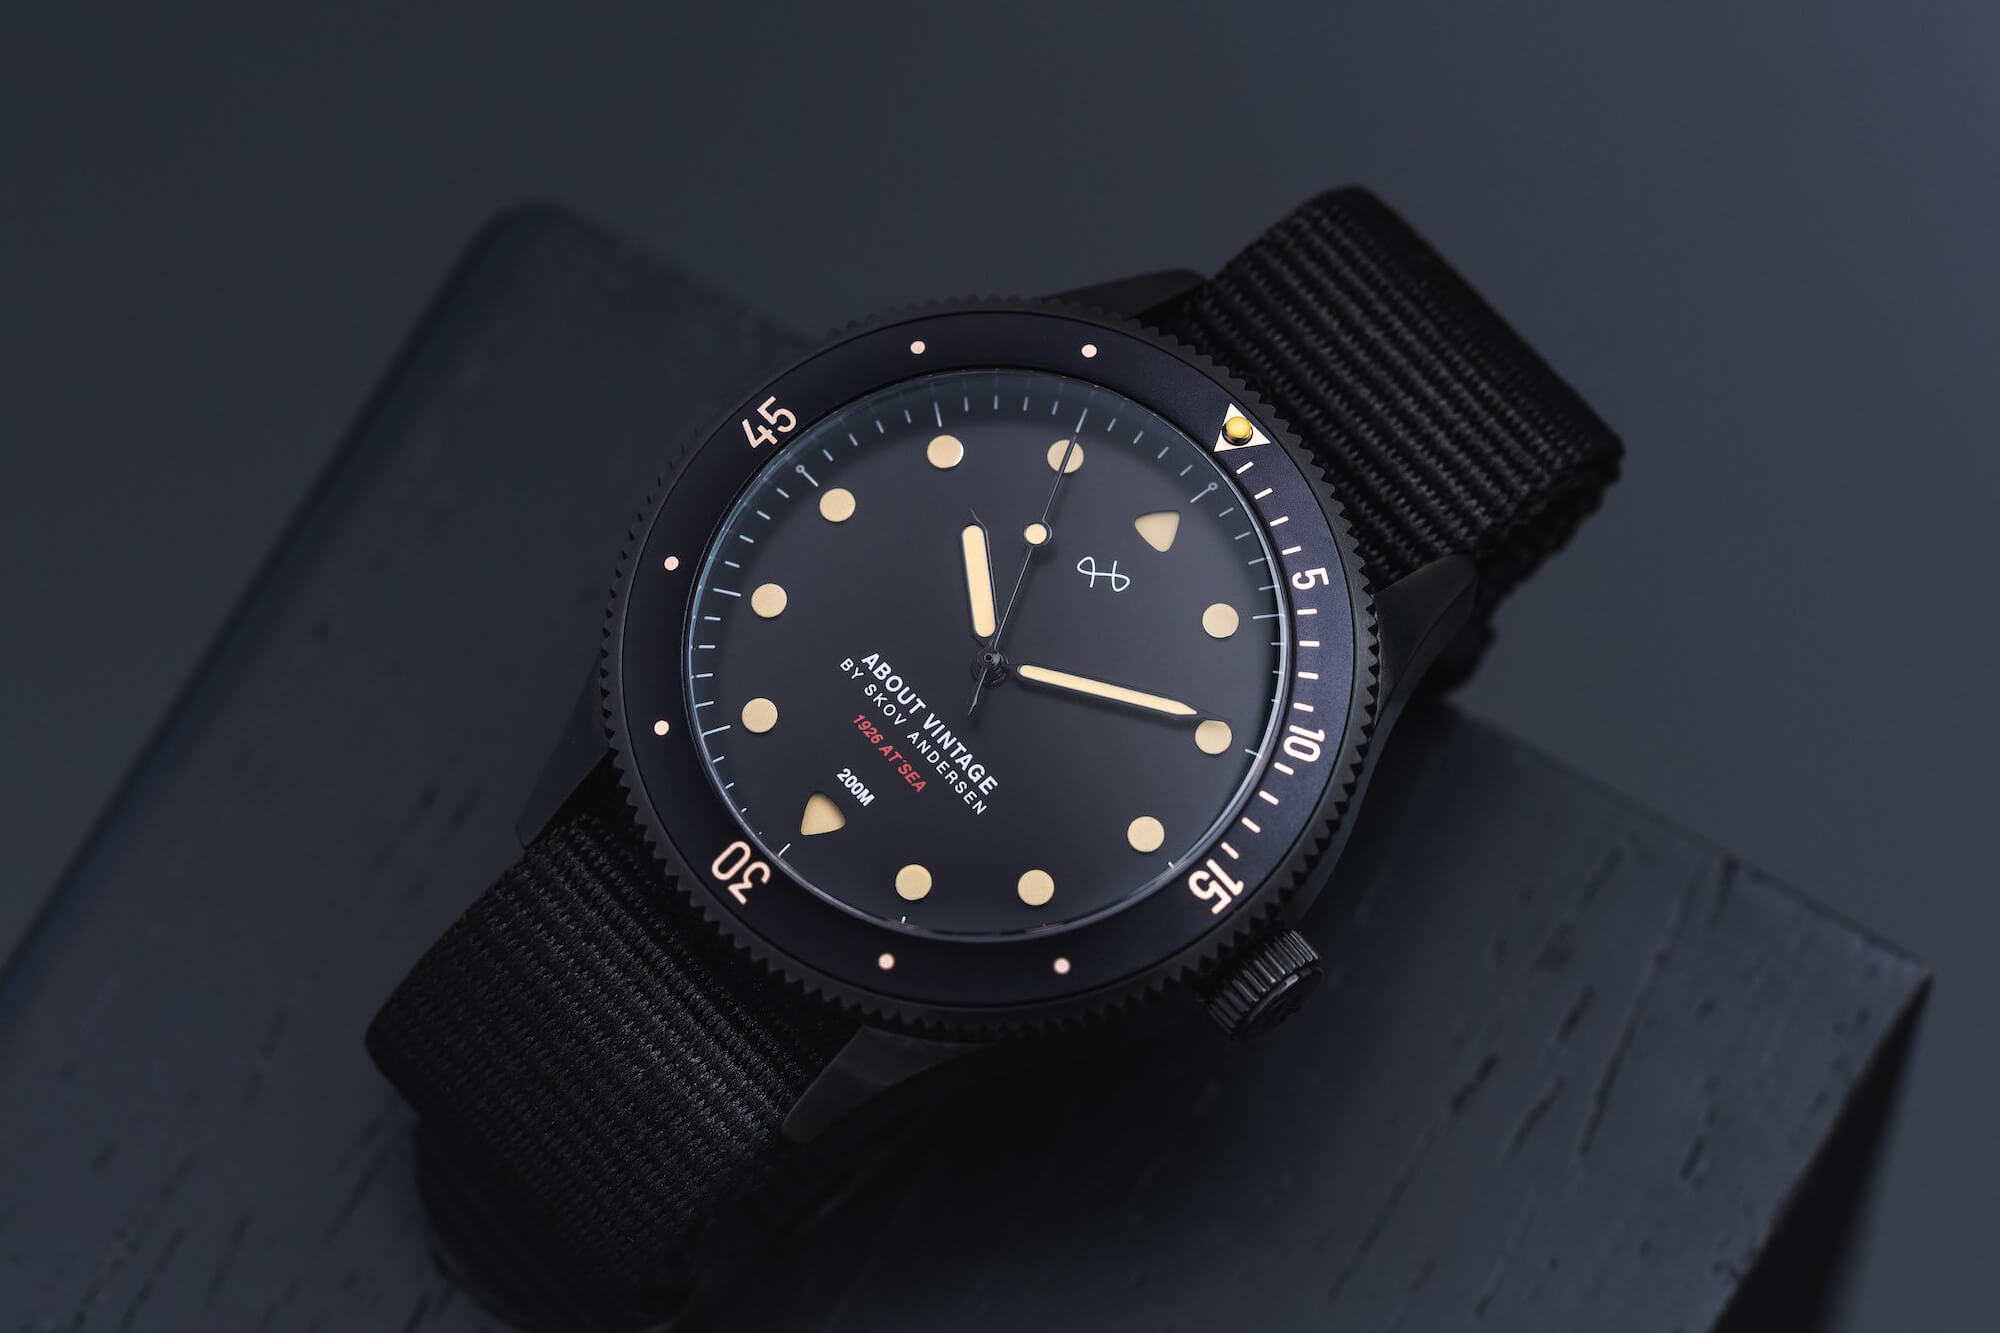 A Diver Watches - A Guide to Buying a Dive Watch